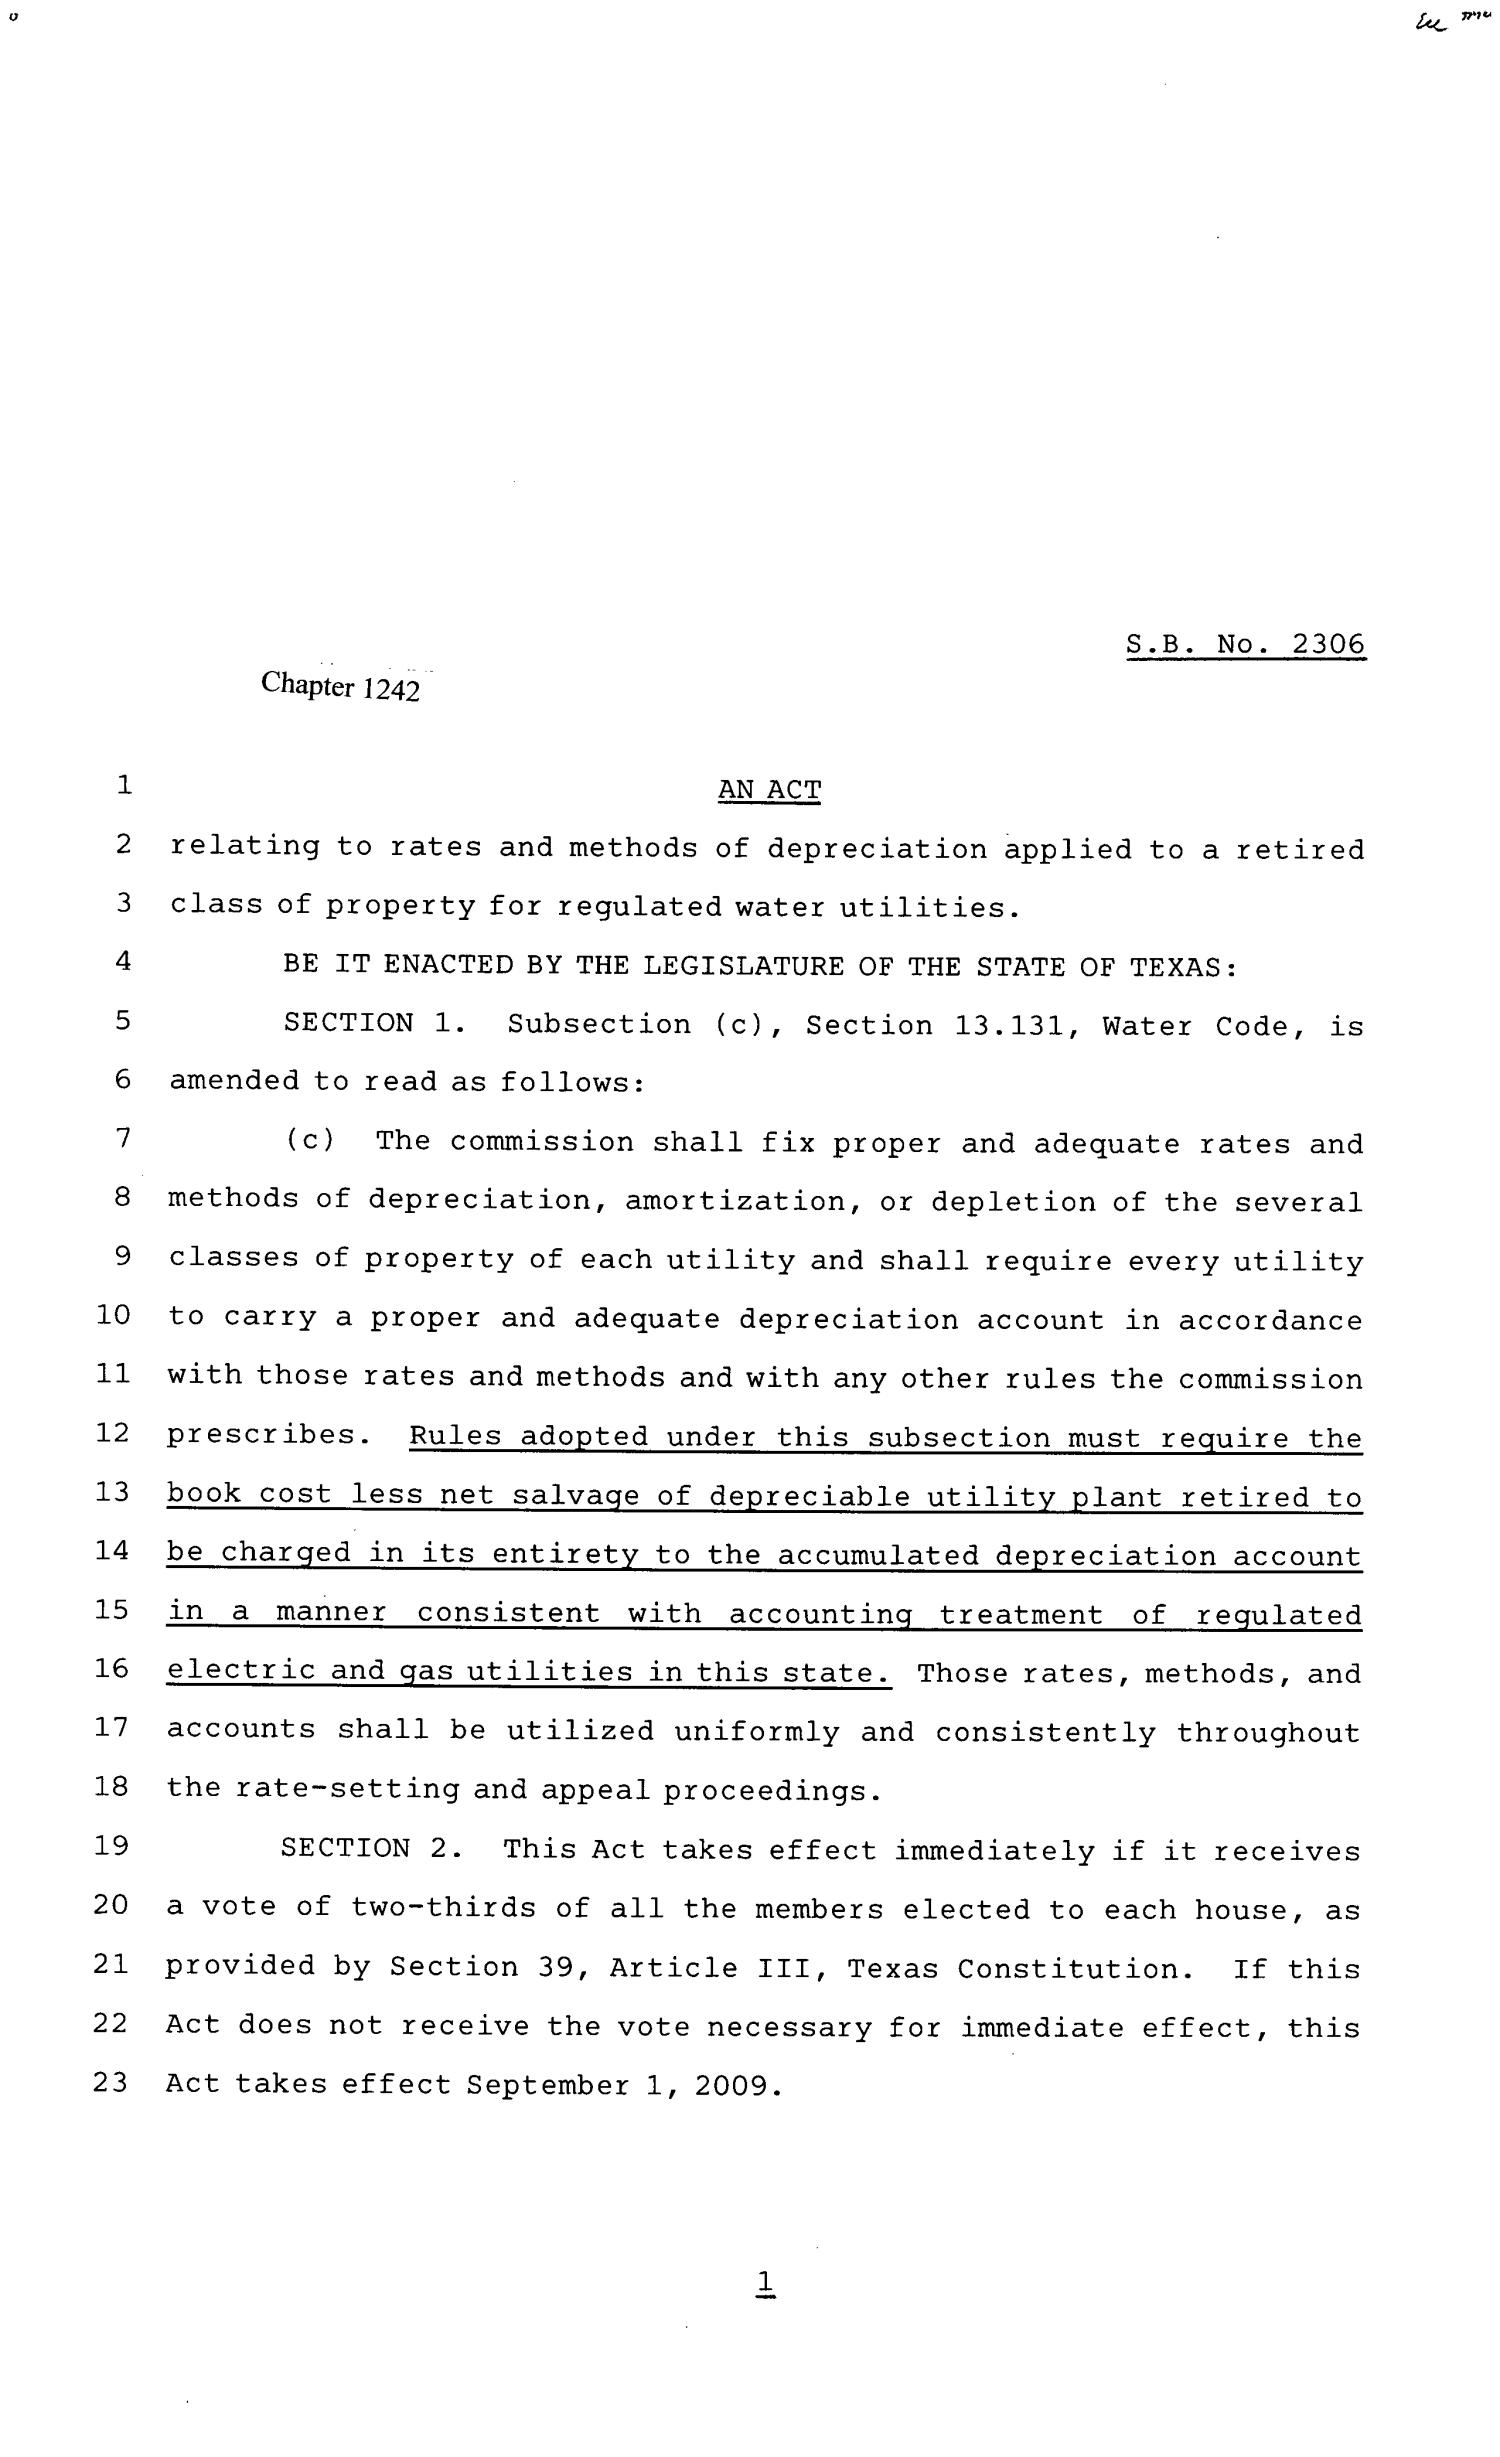 81st Texas Legislature, Senate Bill 2306, Chapter 1242                                                                                                      [Sequence #]: 1 of 2